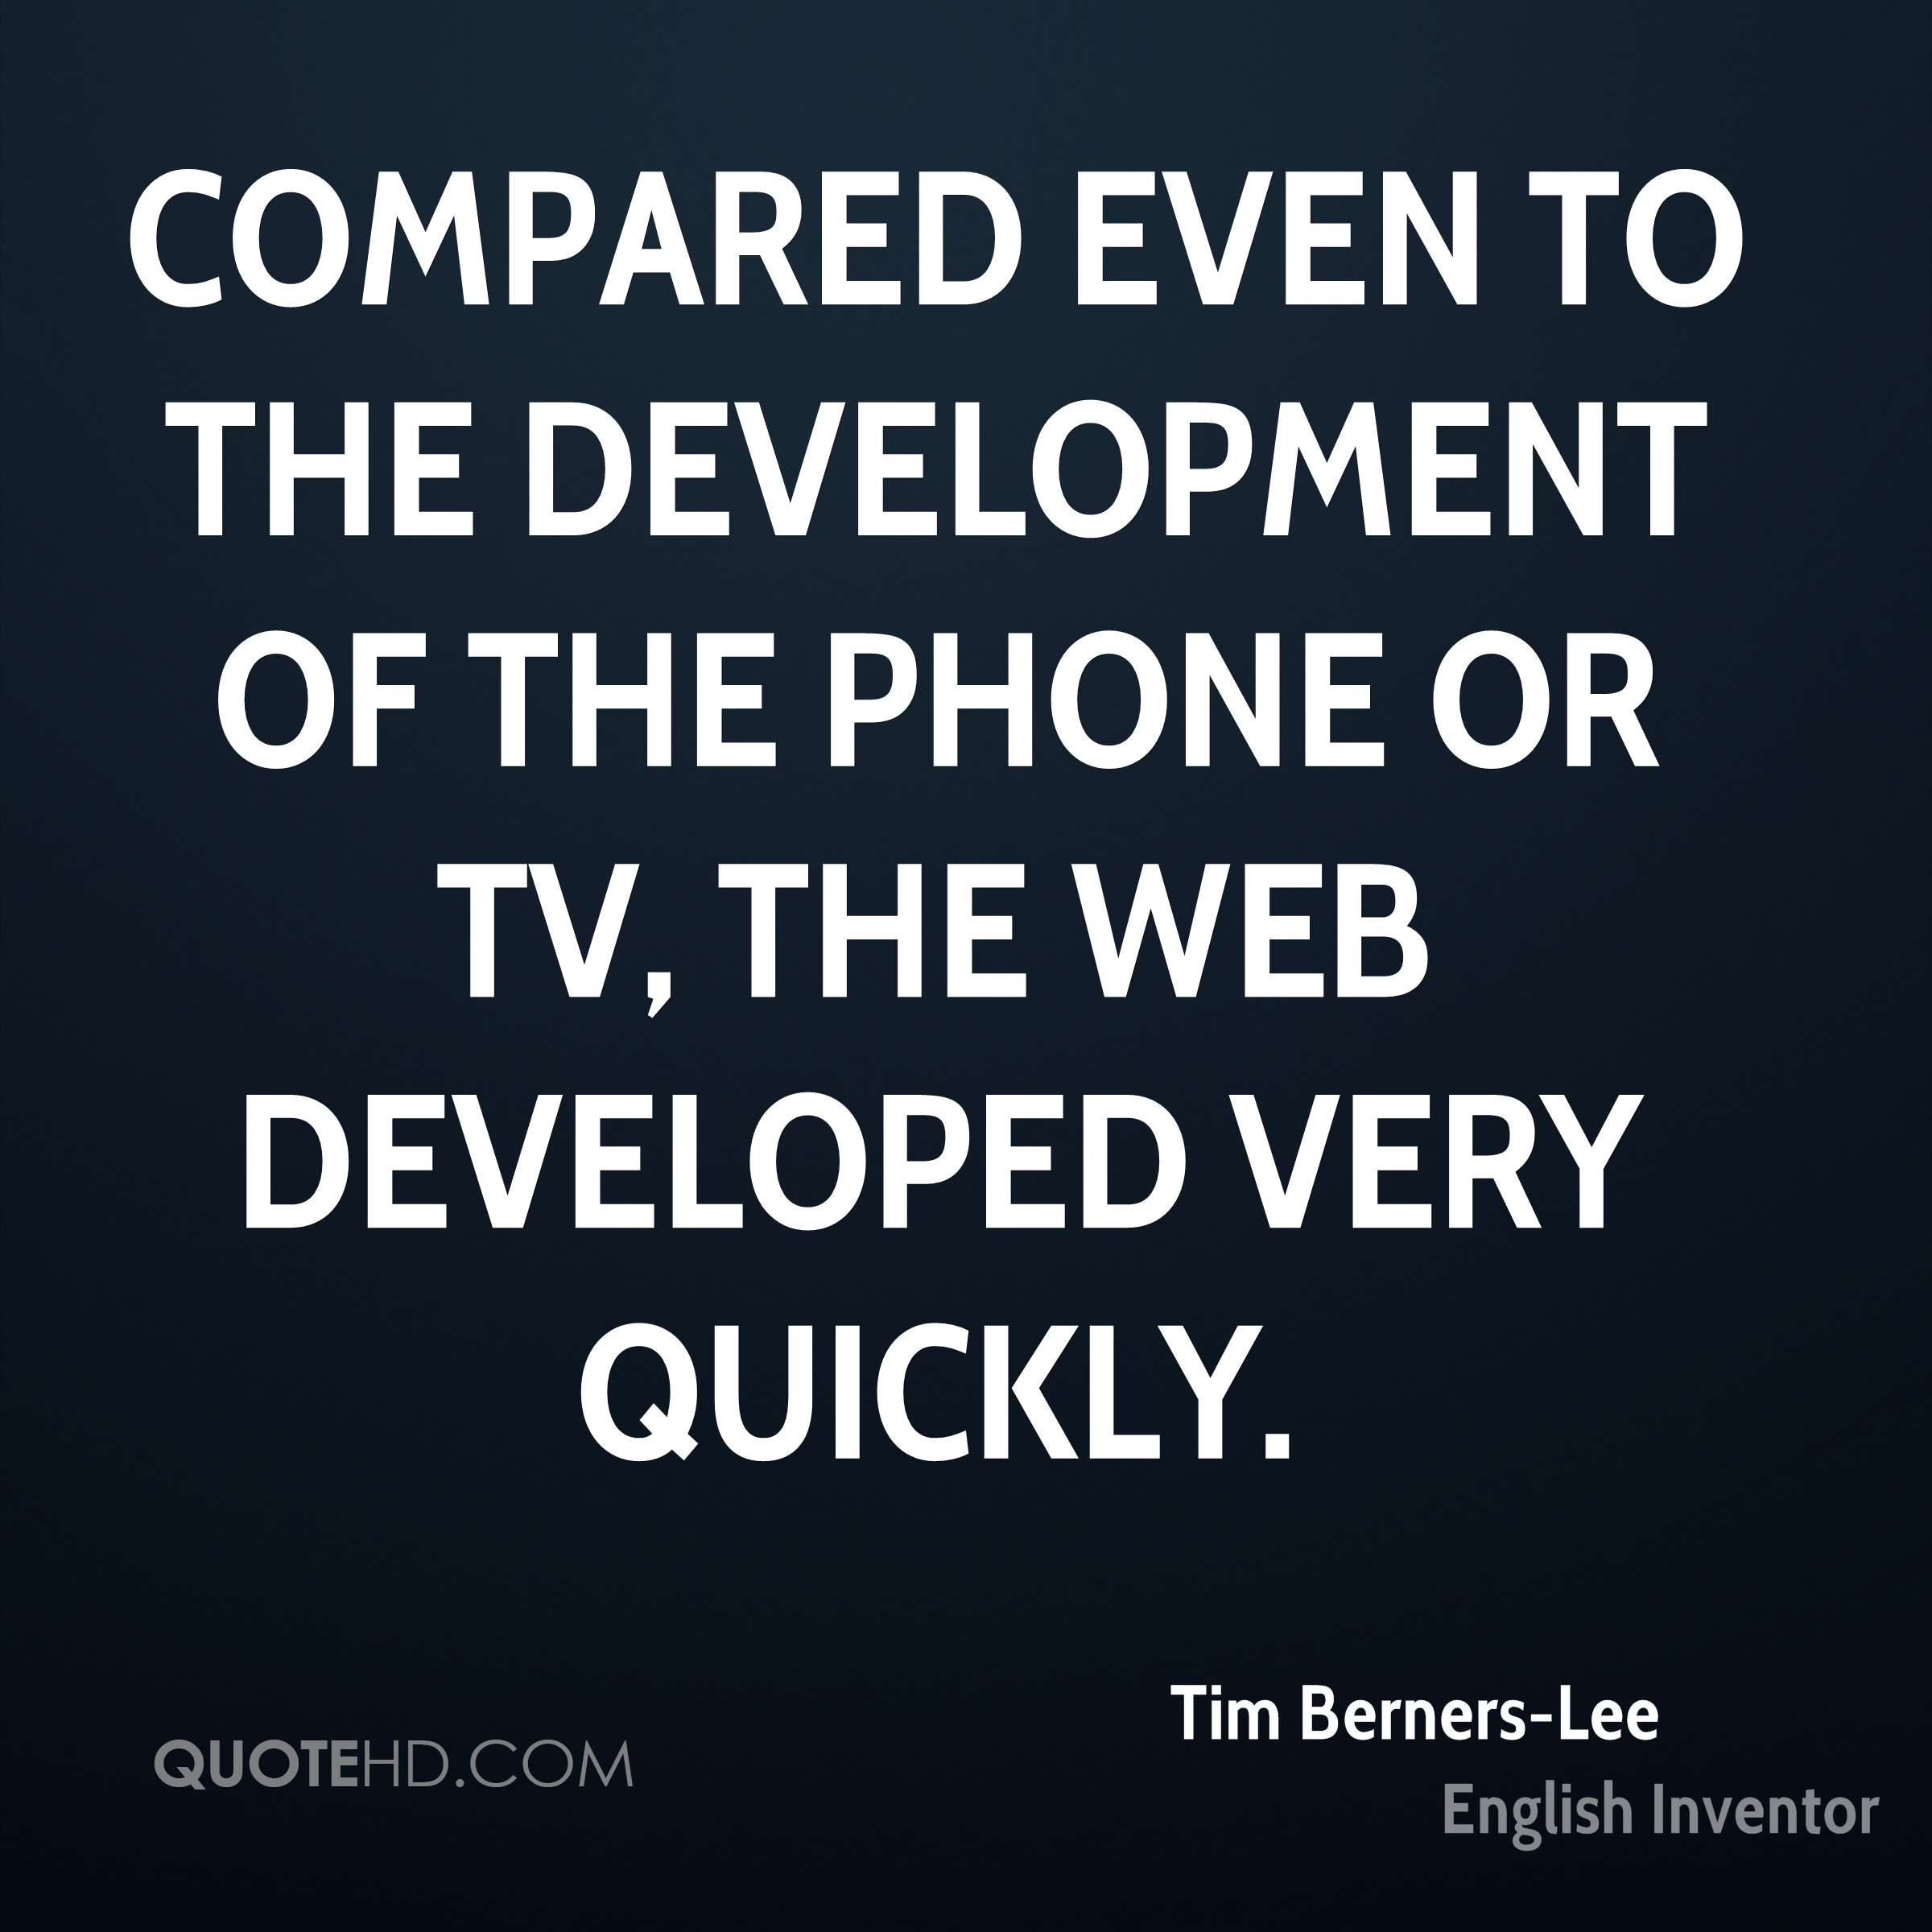 Compared even to the development of the phone or TV, the Web developed very quickly.